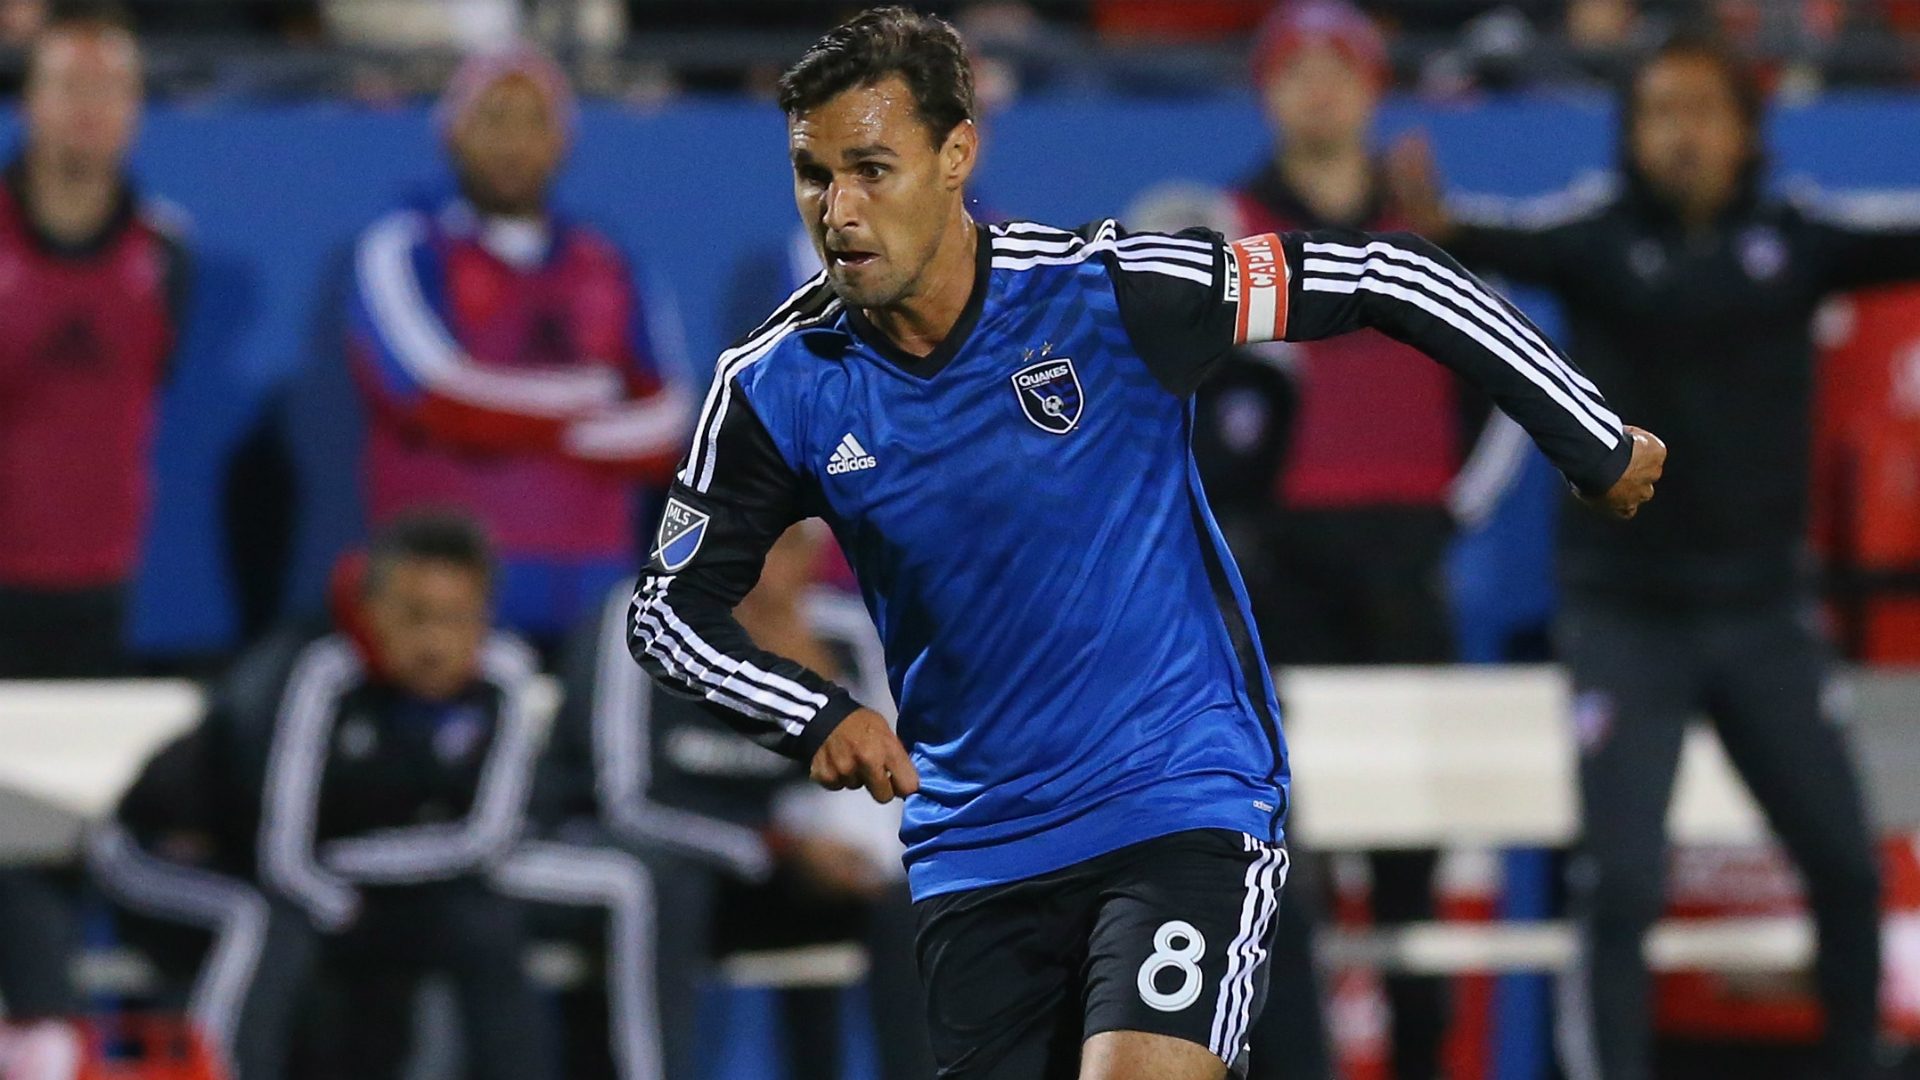 MLS preview: Earthquakes' Wondolowski poised to join 100-goal club